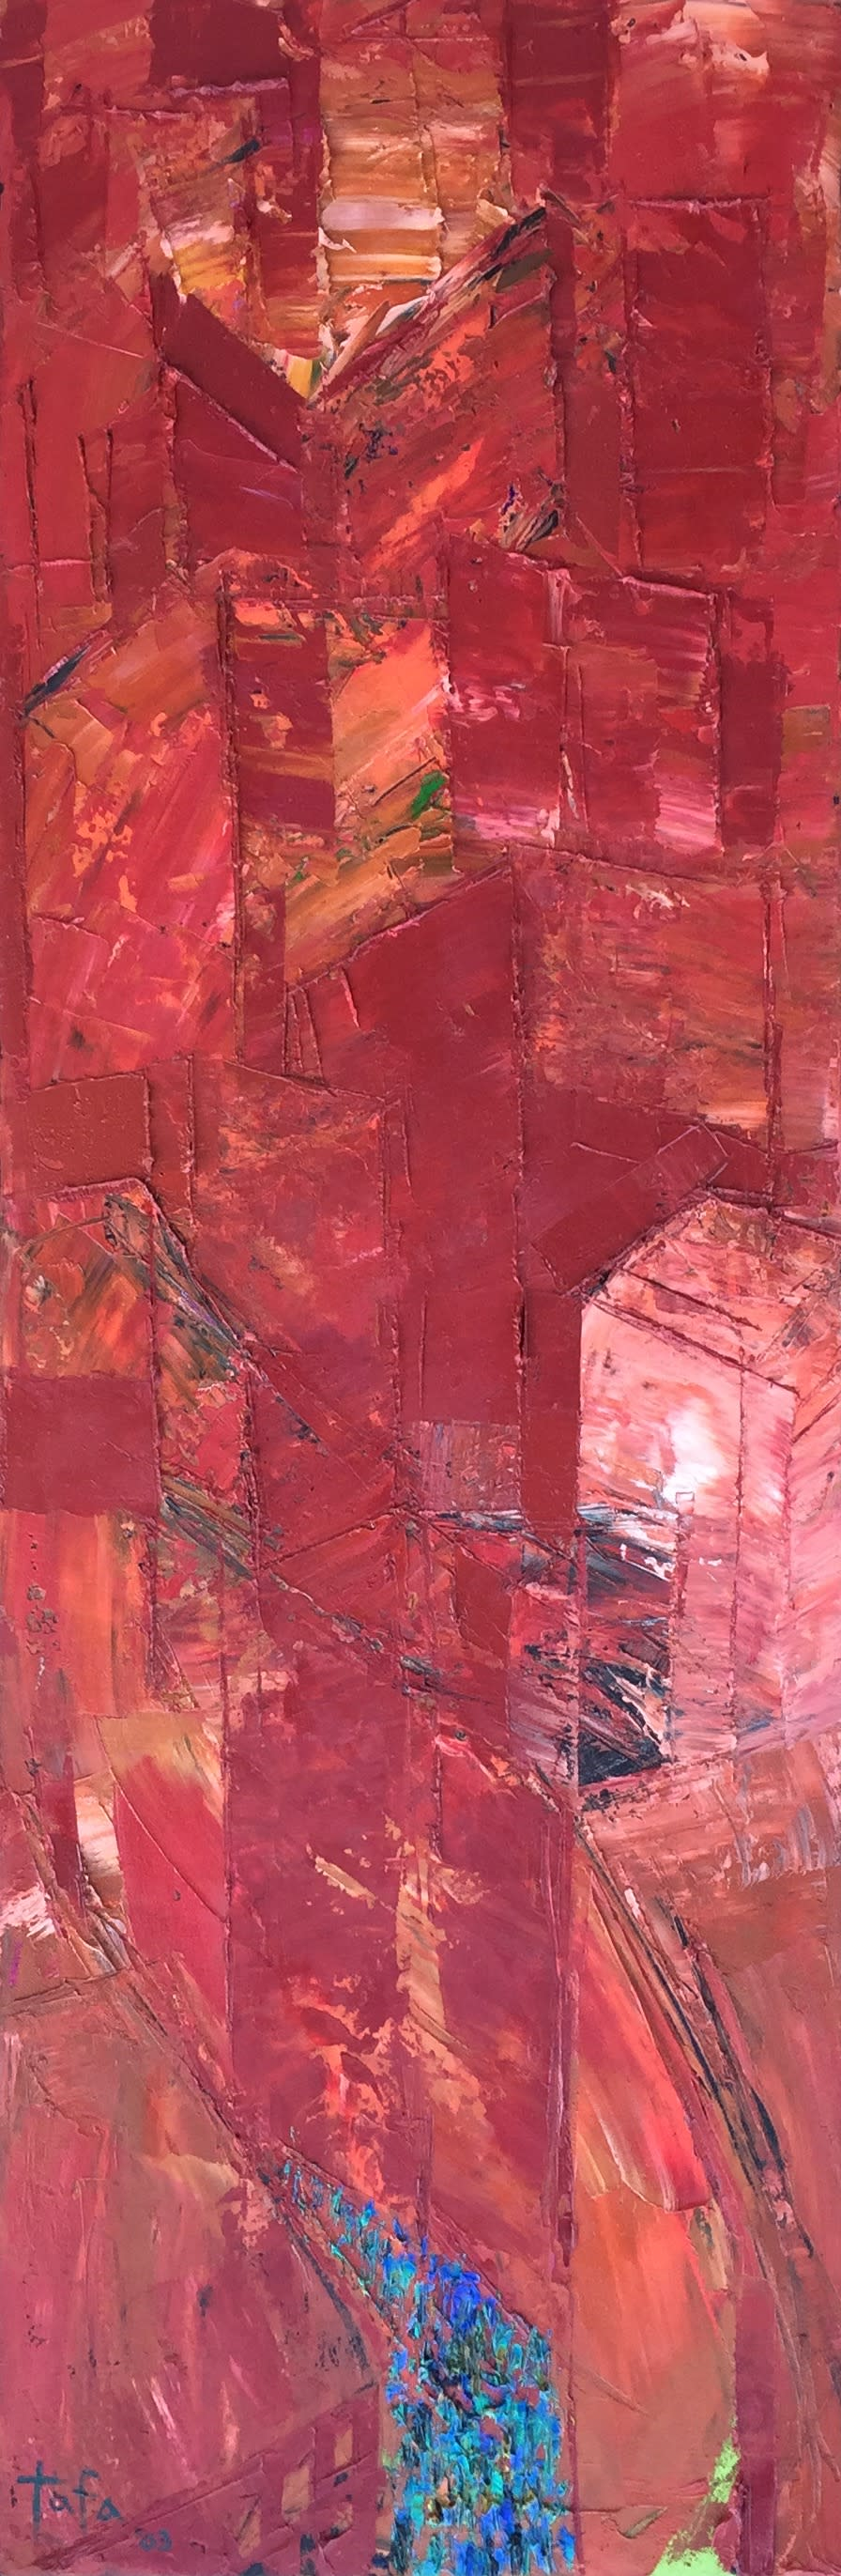 TAFA Red Jungle, 2003.0 Oil 42 x 14